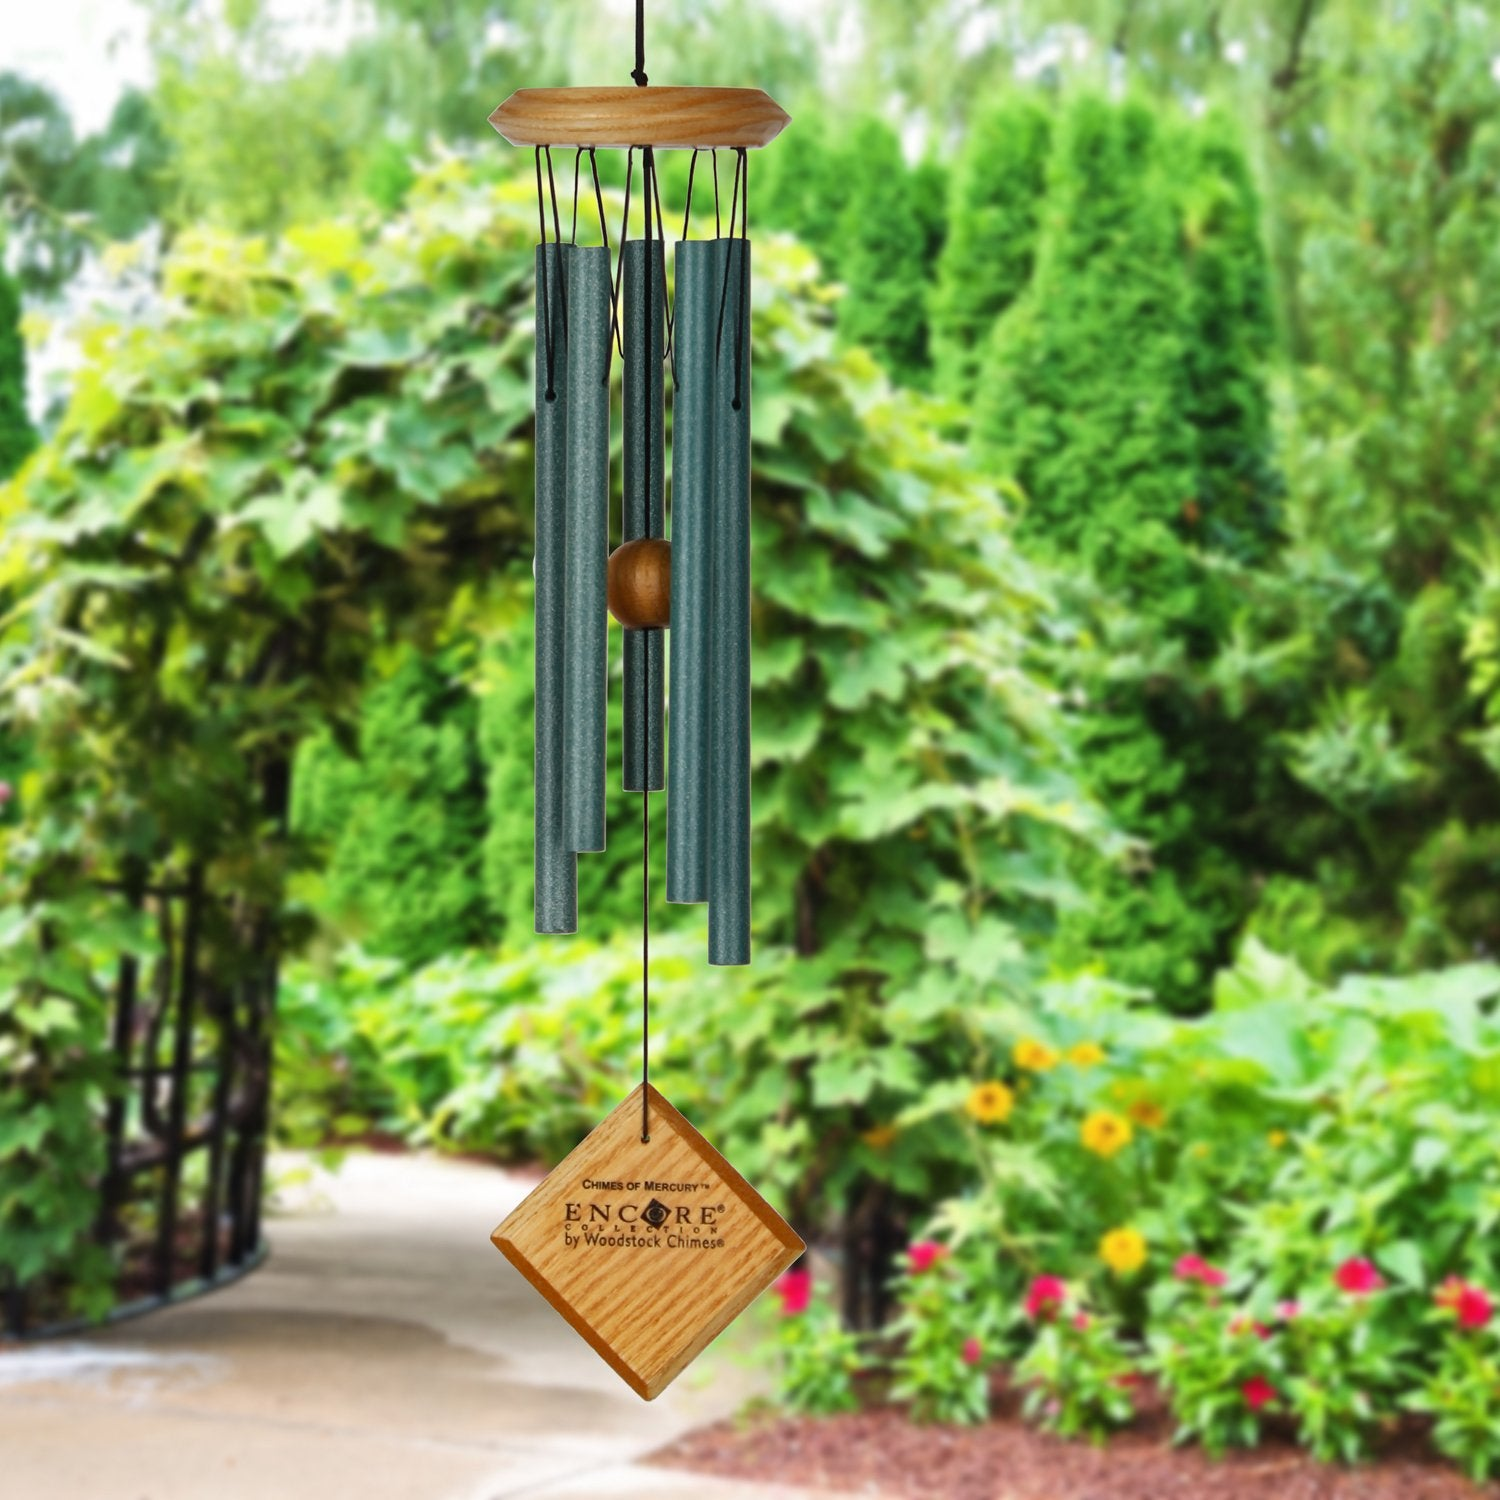 Encore Chimes of Mercury - Verdigris lifestyle image